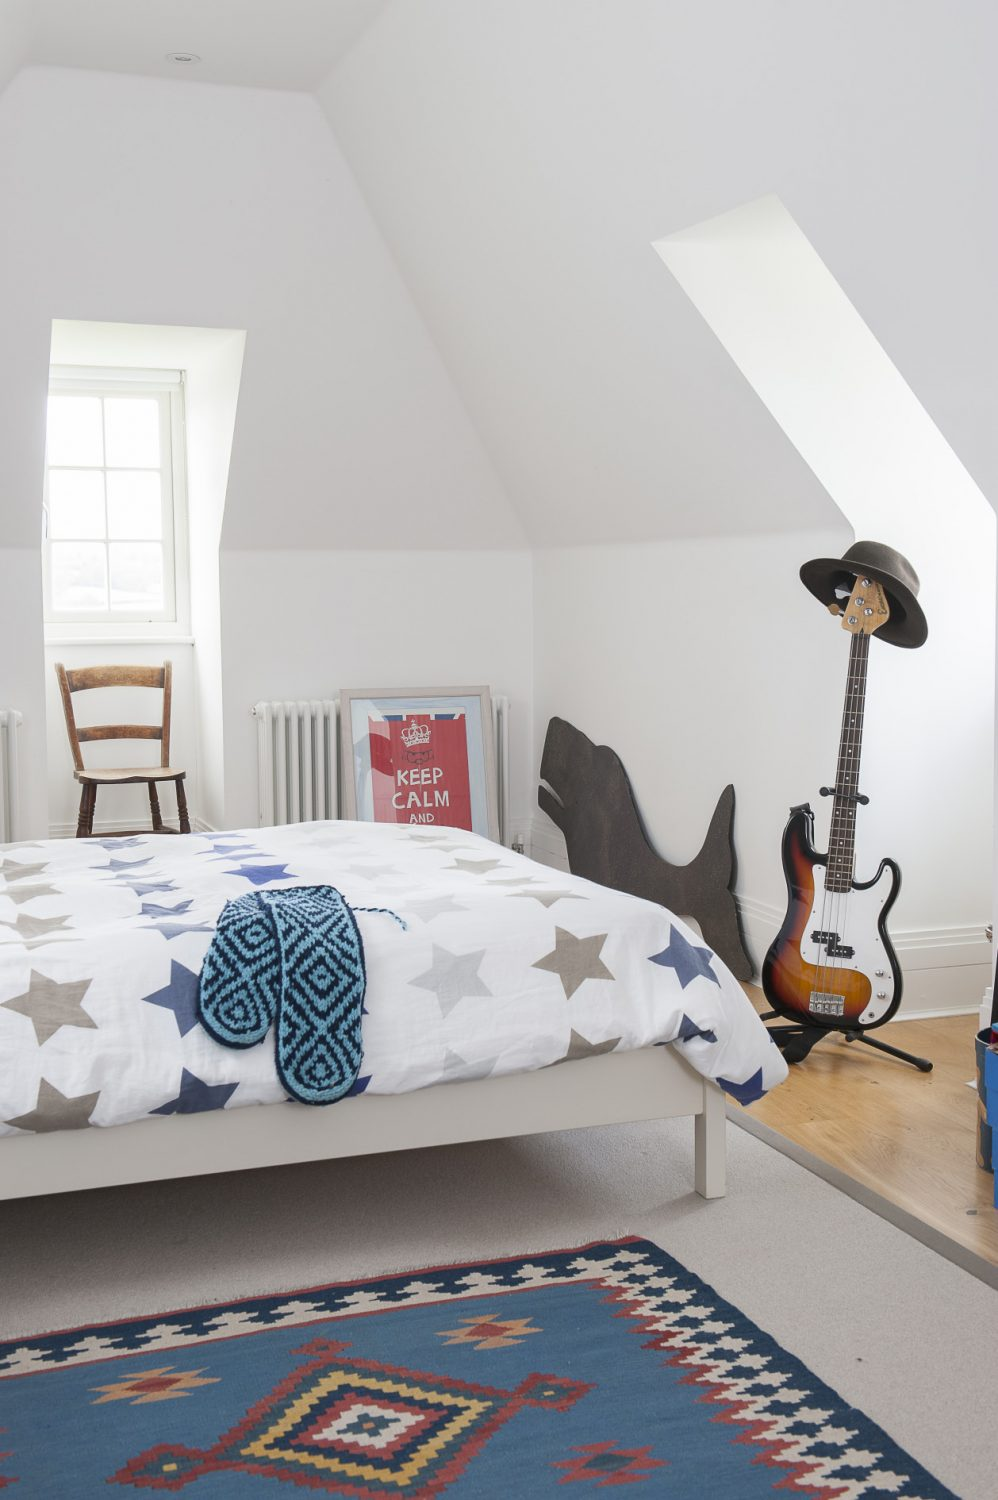 Rooflight windows mean that the children's attic rooms are anything but dark and dingy